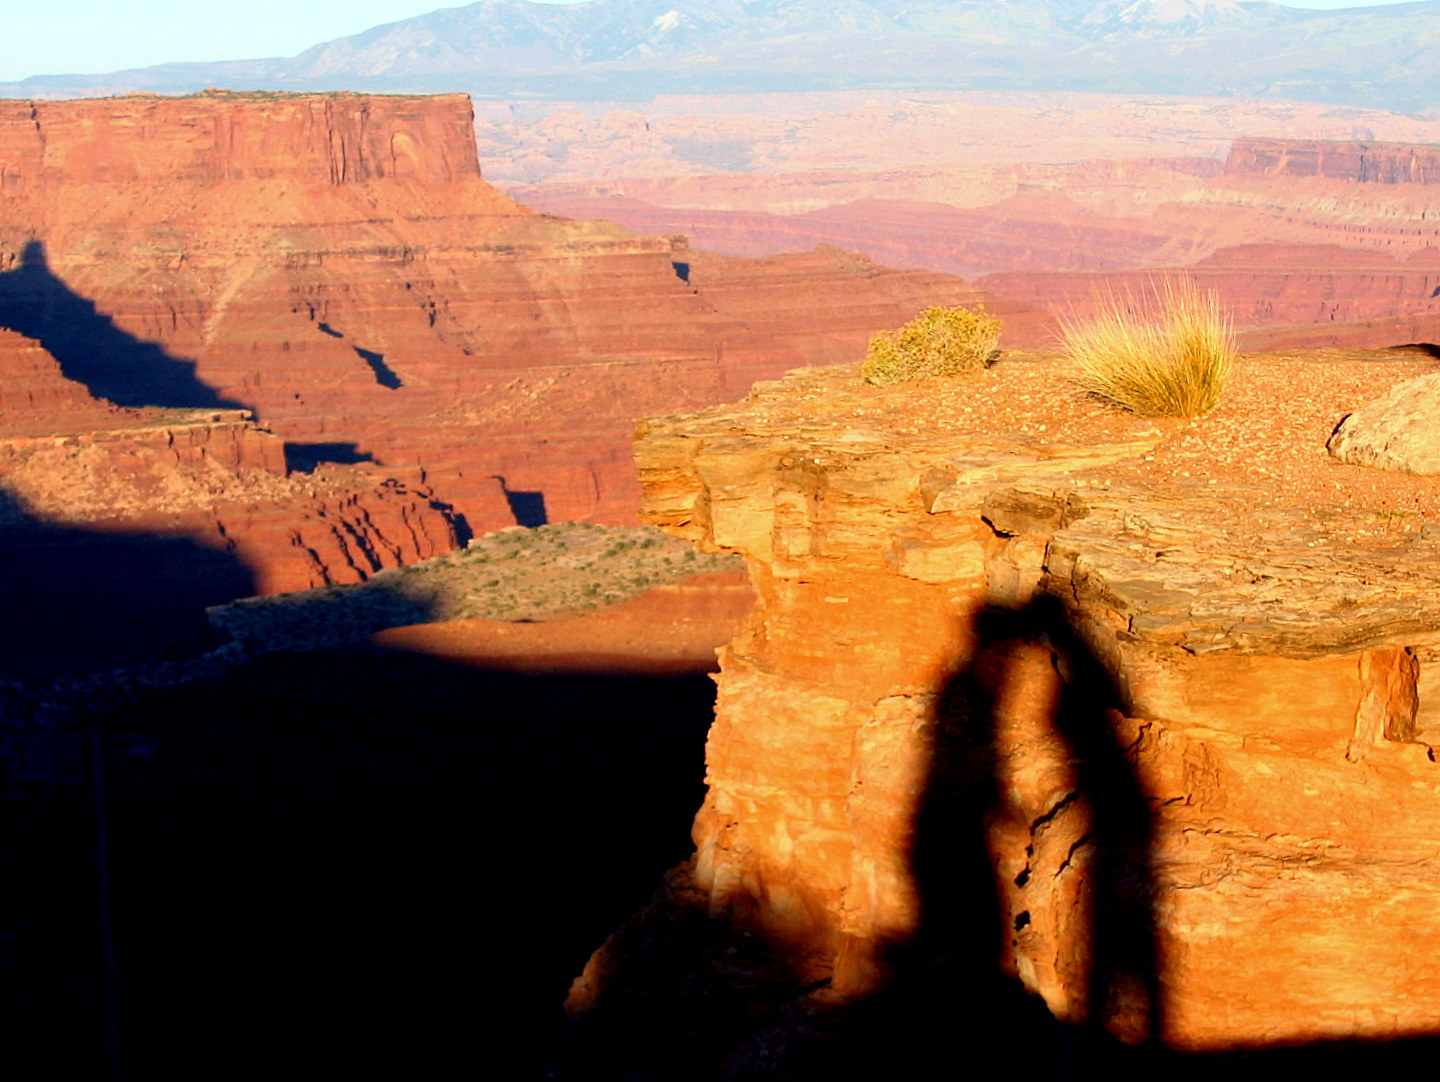 Silhouette of a kiss at Dead Horse Point State Park, Utah. Tamara and Donny of Turtles Travel.